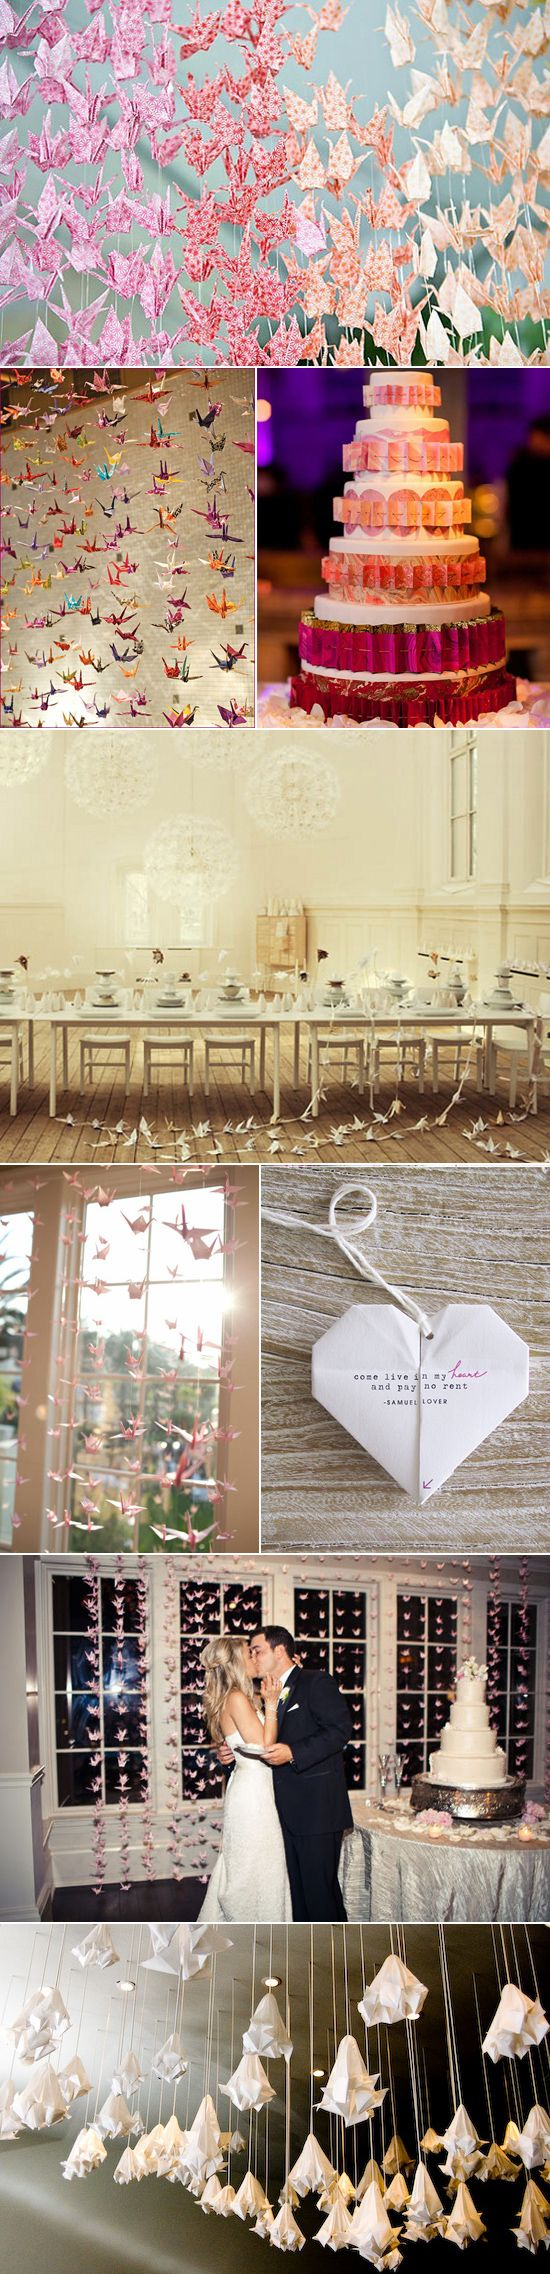 Origami wedding details - you can hand make these, buy paper in bulk - DIY and money saving. (Plus it's beautiful!)